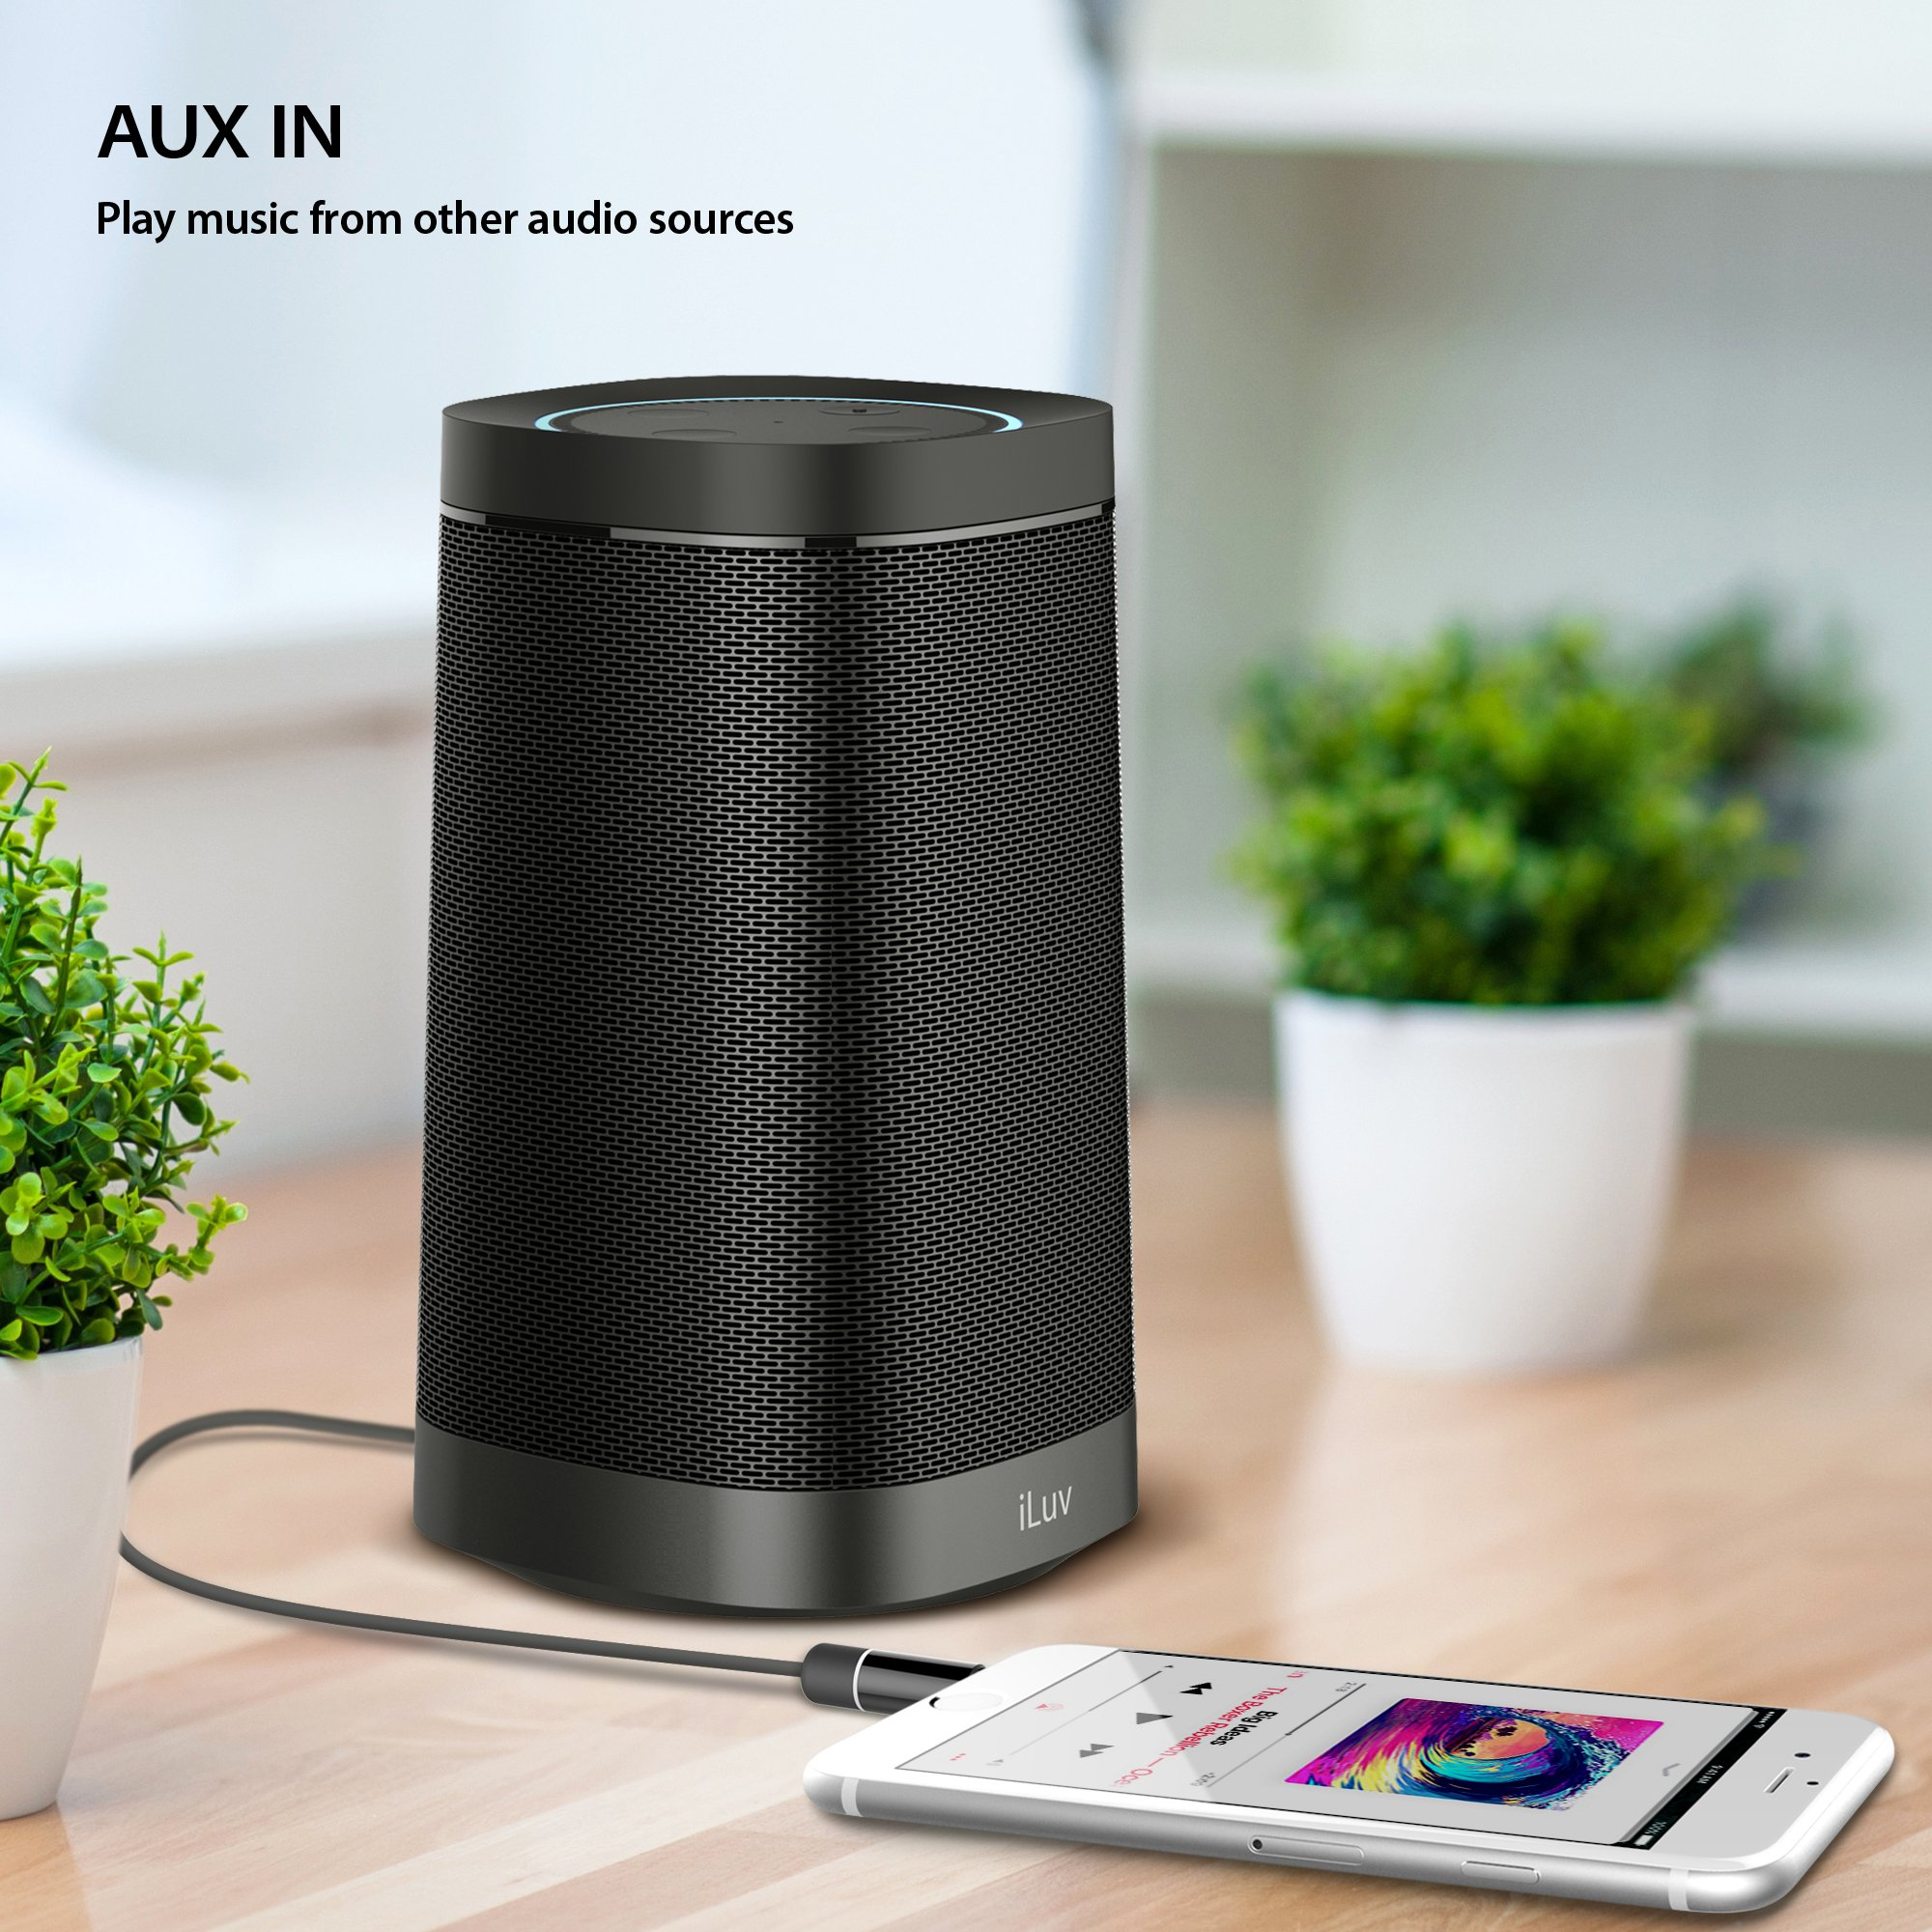 iLuv Aud Dock, Amazon Echo Dot Docking Audio Speaker with Powerful Dynamic Digital Sound, Portability, Plug & Play, Aux-in Port, Rechargeable Battery, and Micro USB Cable (Black) by iLuv (Image #6)